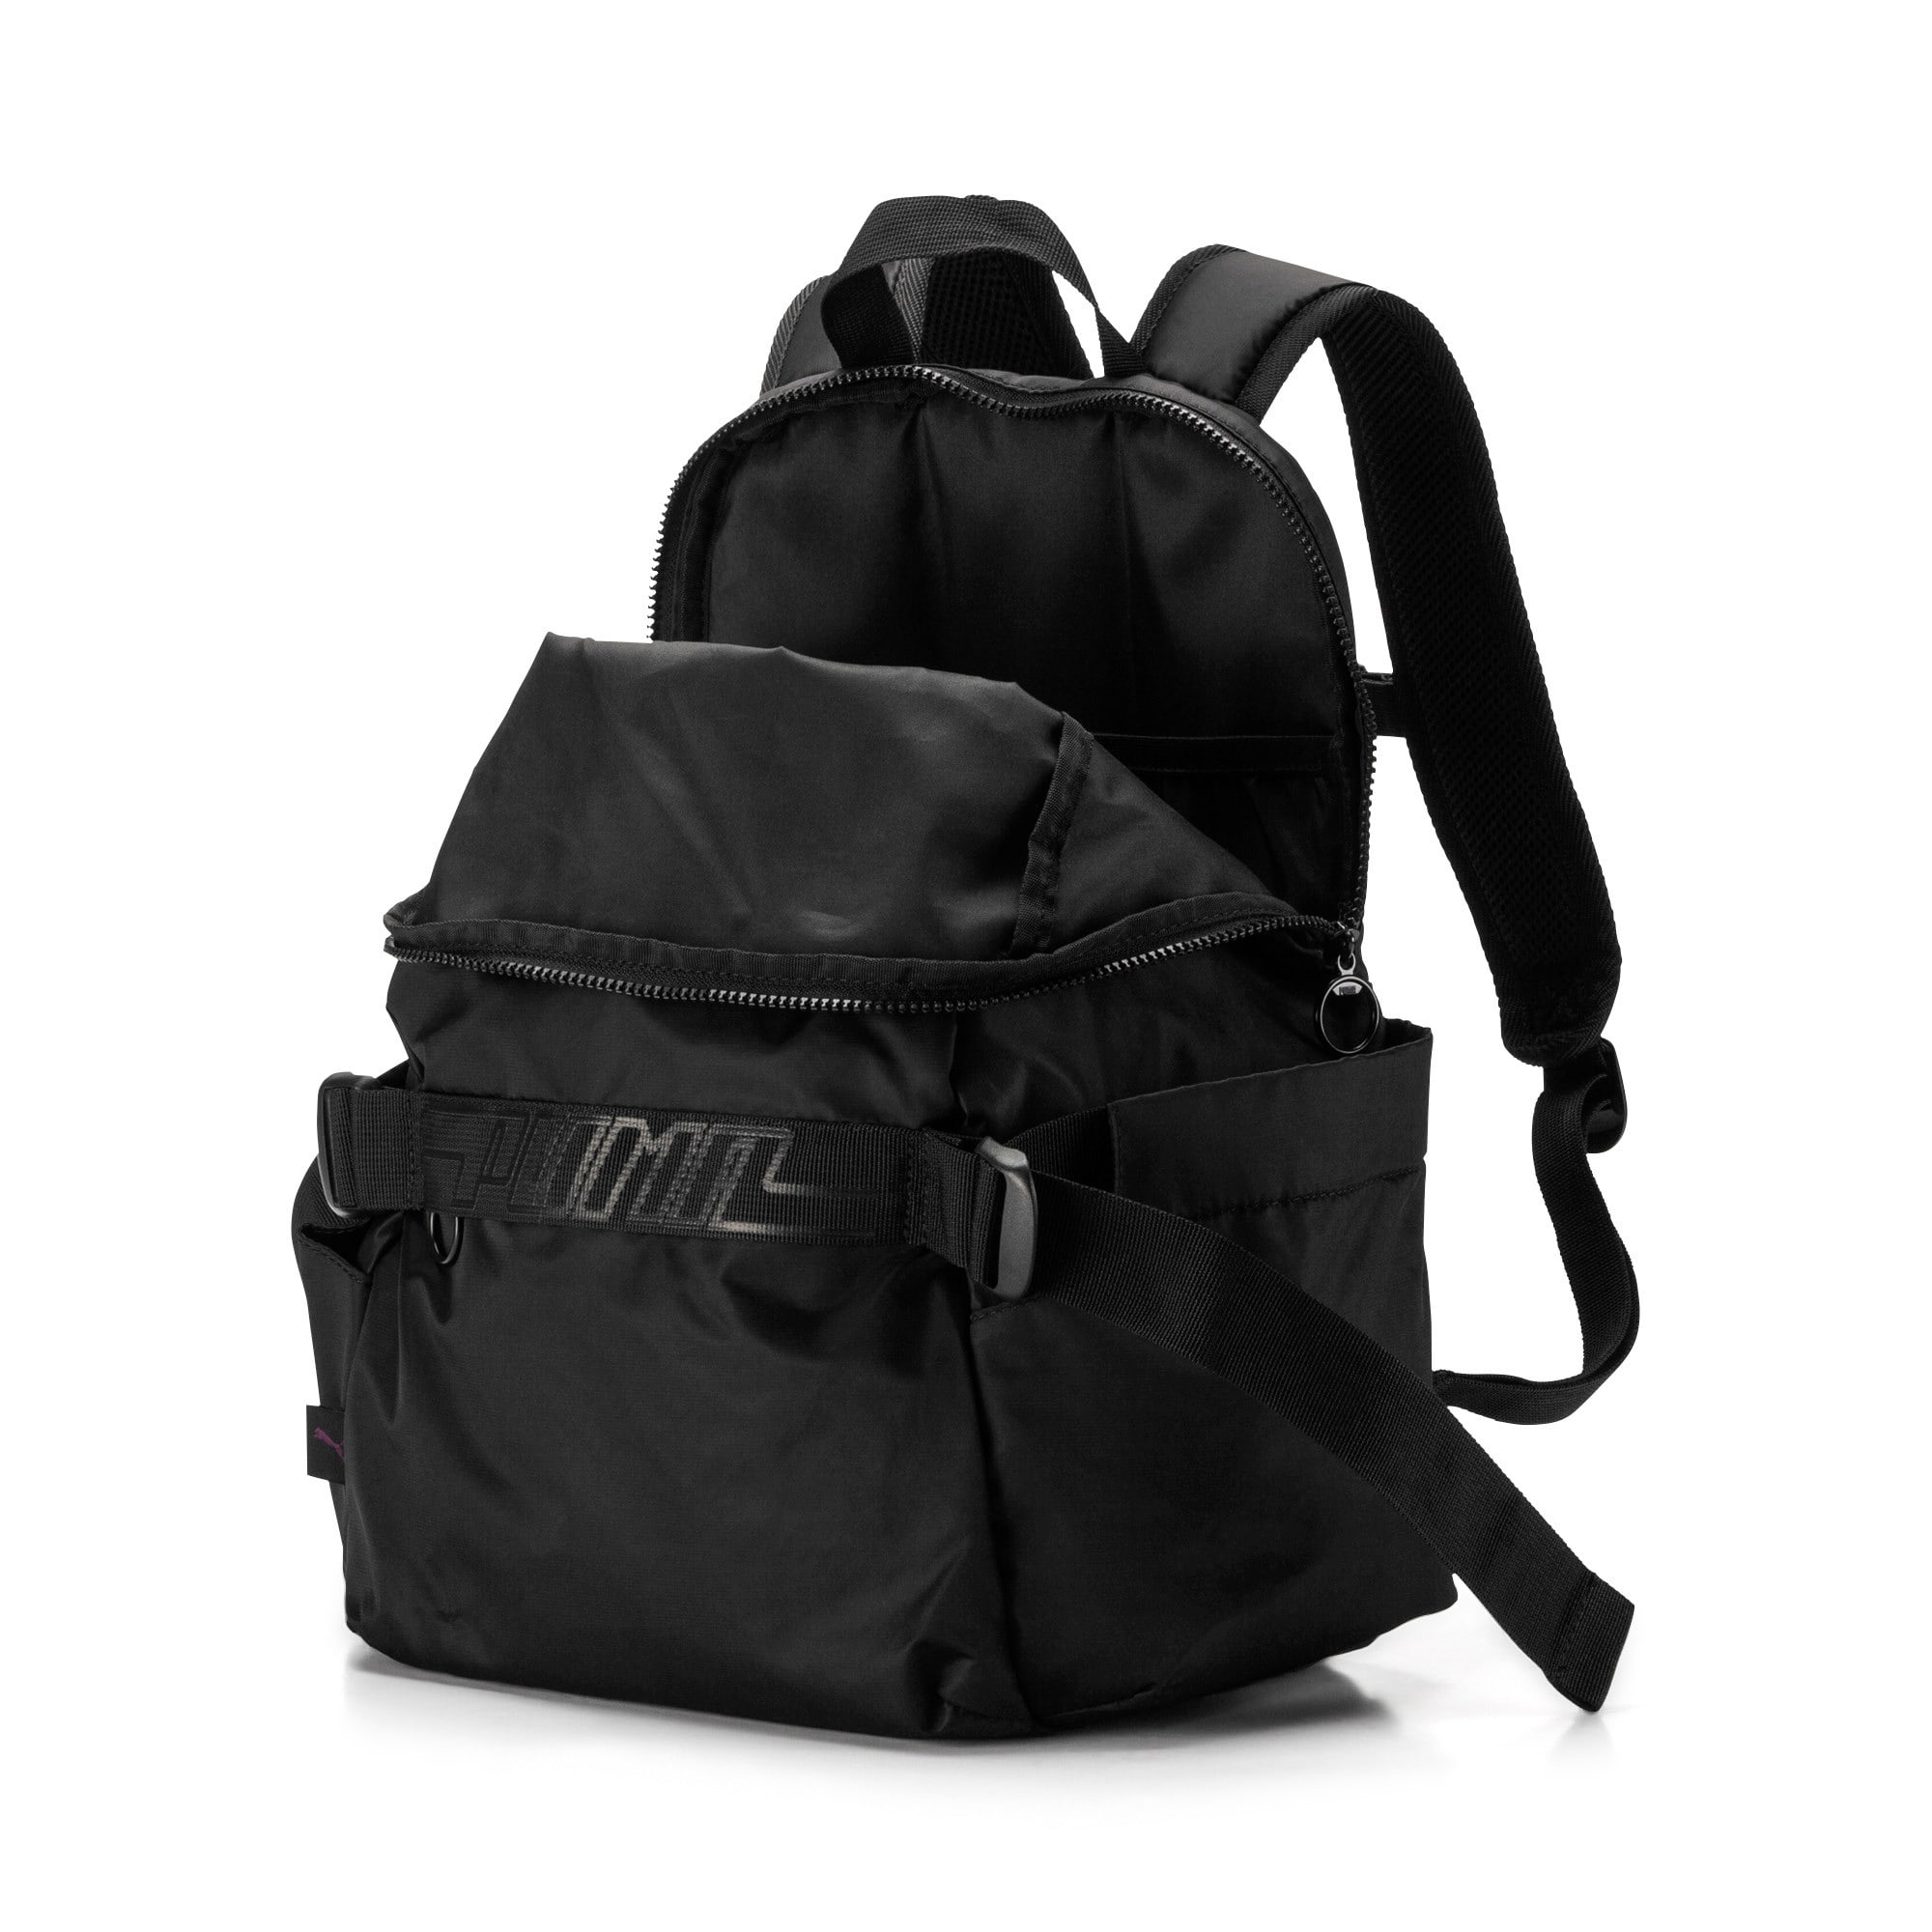 Thumbnail 4 of Cosmic Backpack, Puma Black, medium